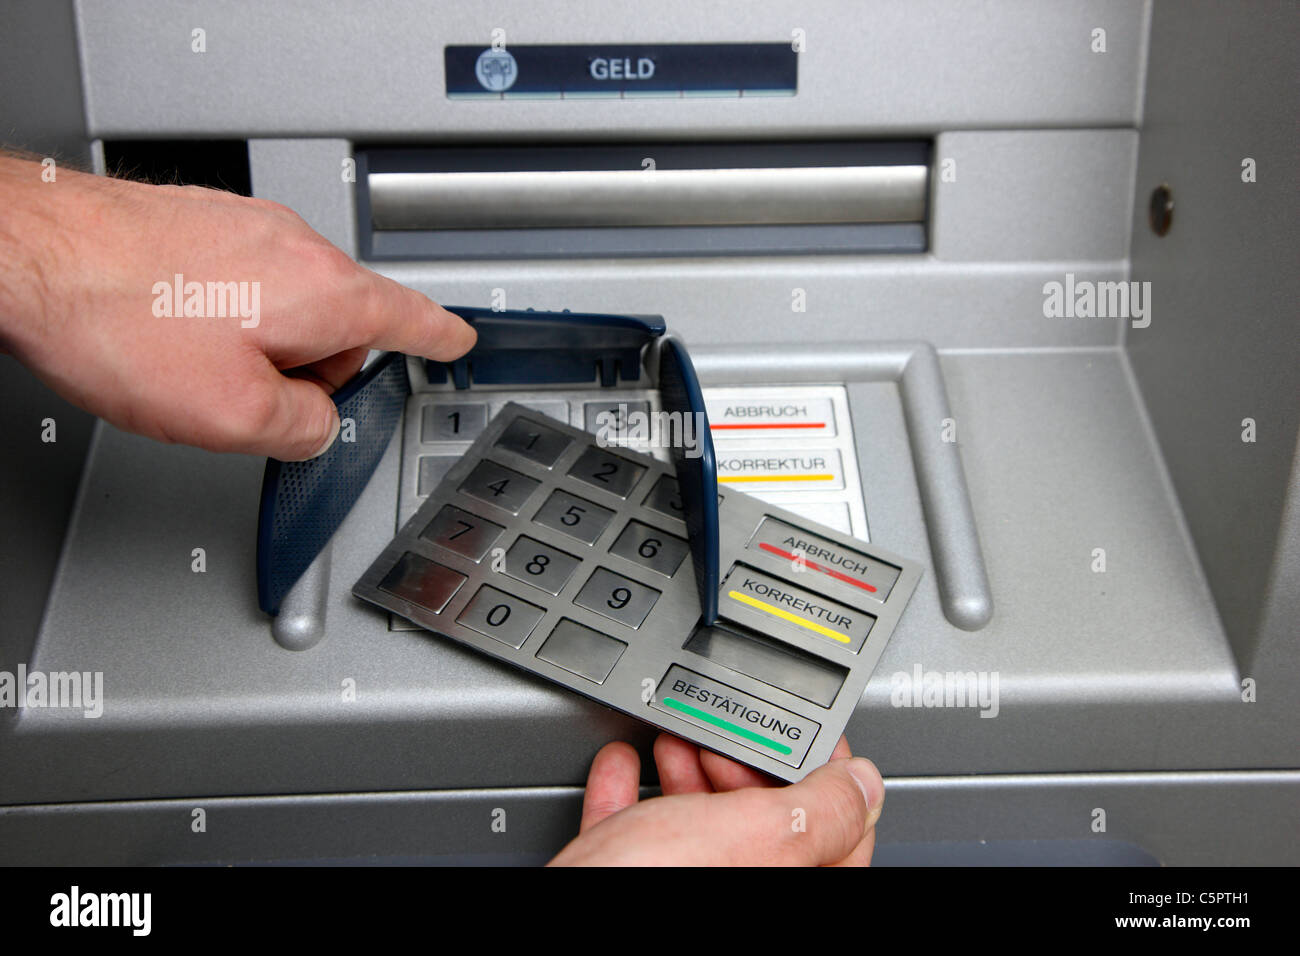 Skimming Devices For Manipulation A Cash Machine Atm